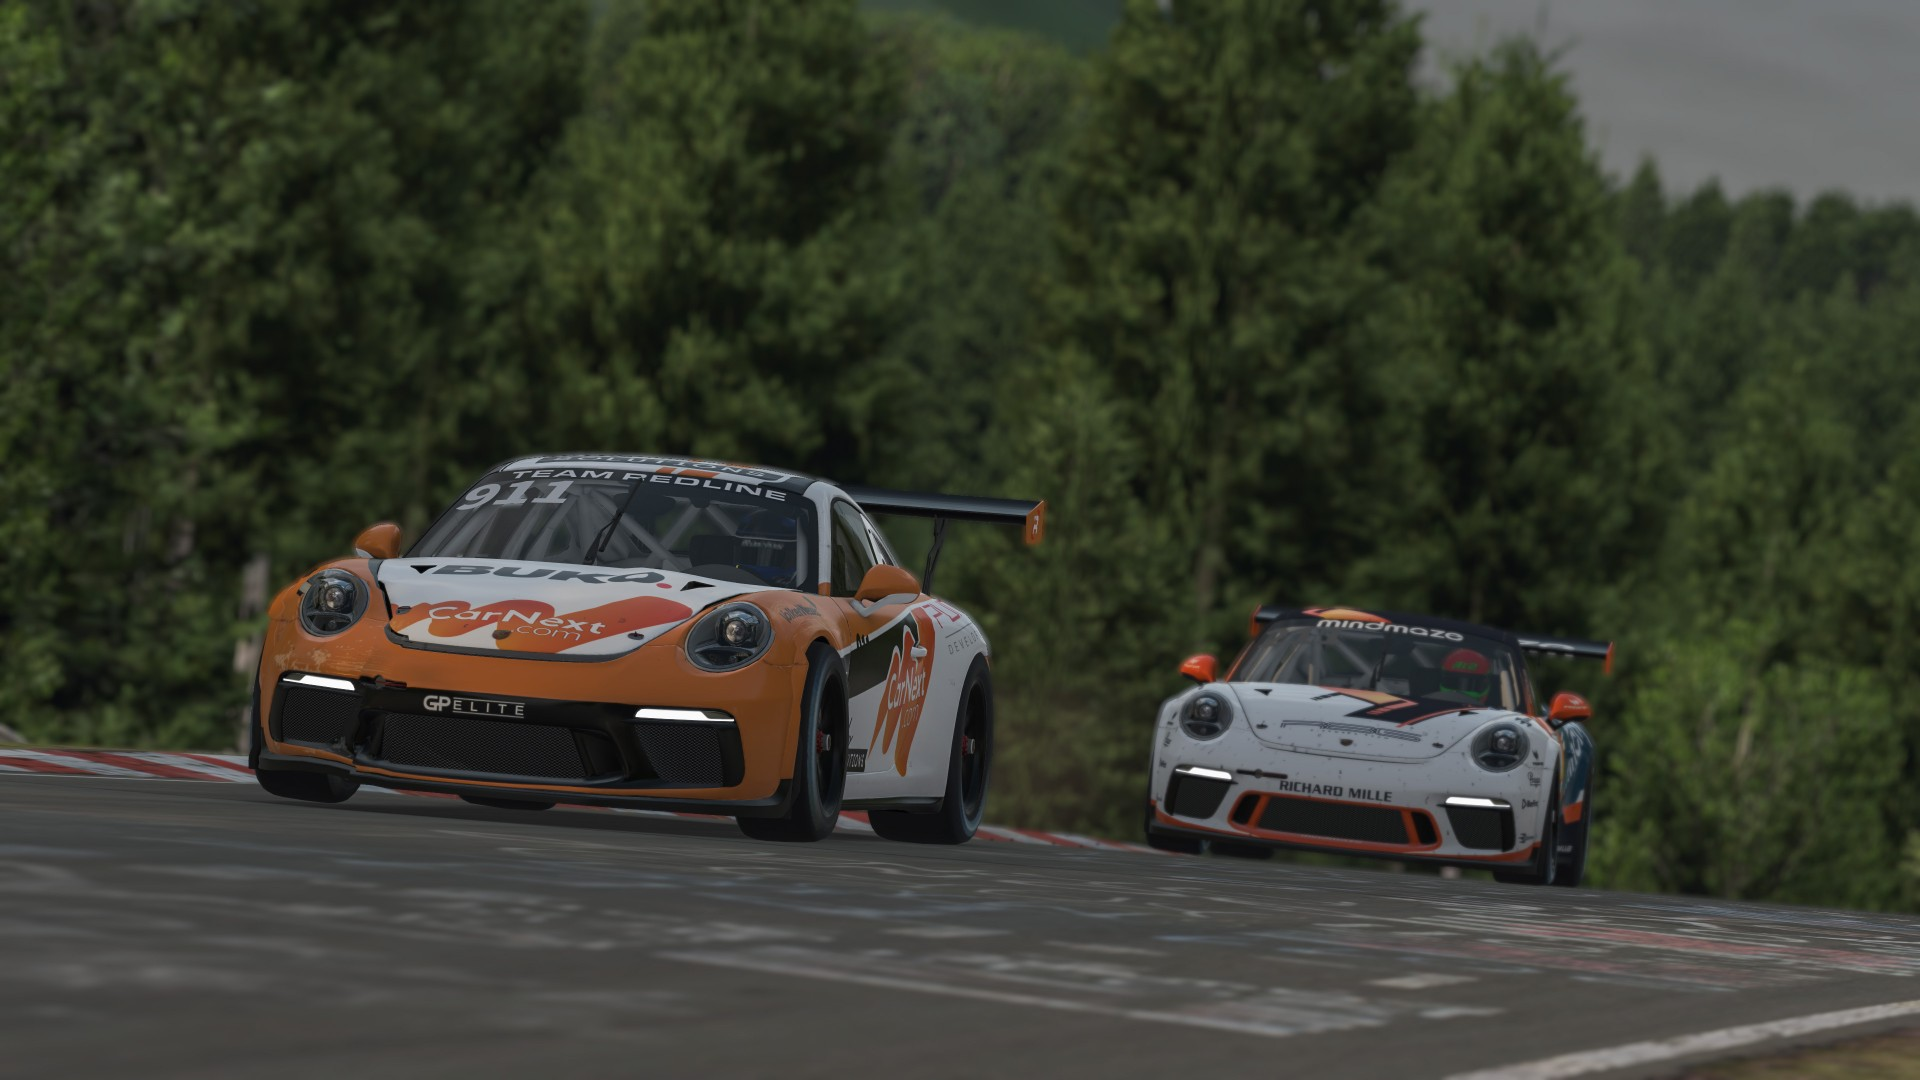 Porsche24 driven by Redline wint klasse in virtuele 24-uursrace Nürburgring